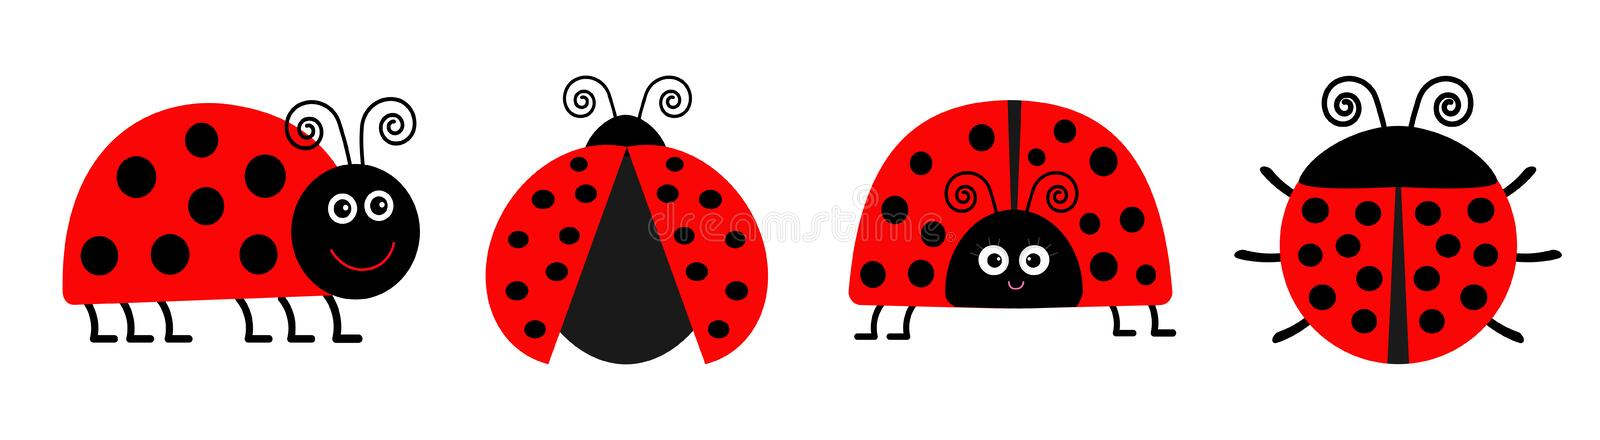 Ladybug Ladybird icon set line. Funny insect. Cute cartoon kawaii funny character. Flat design. White background. Isolated vector illustration